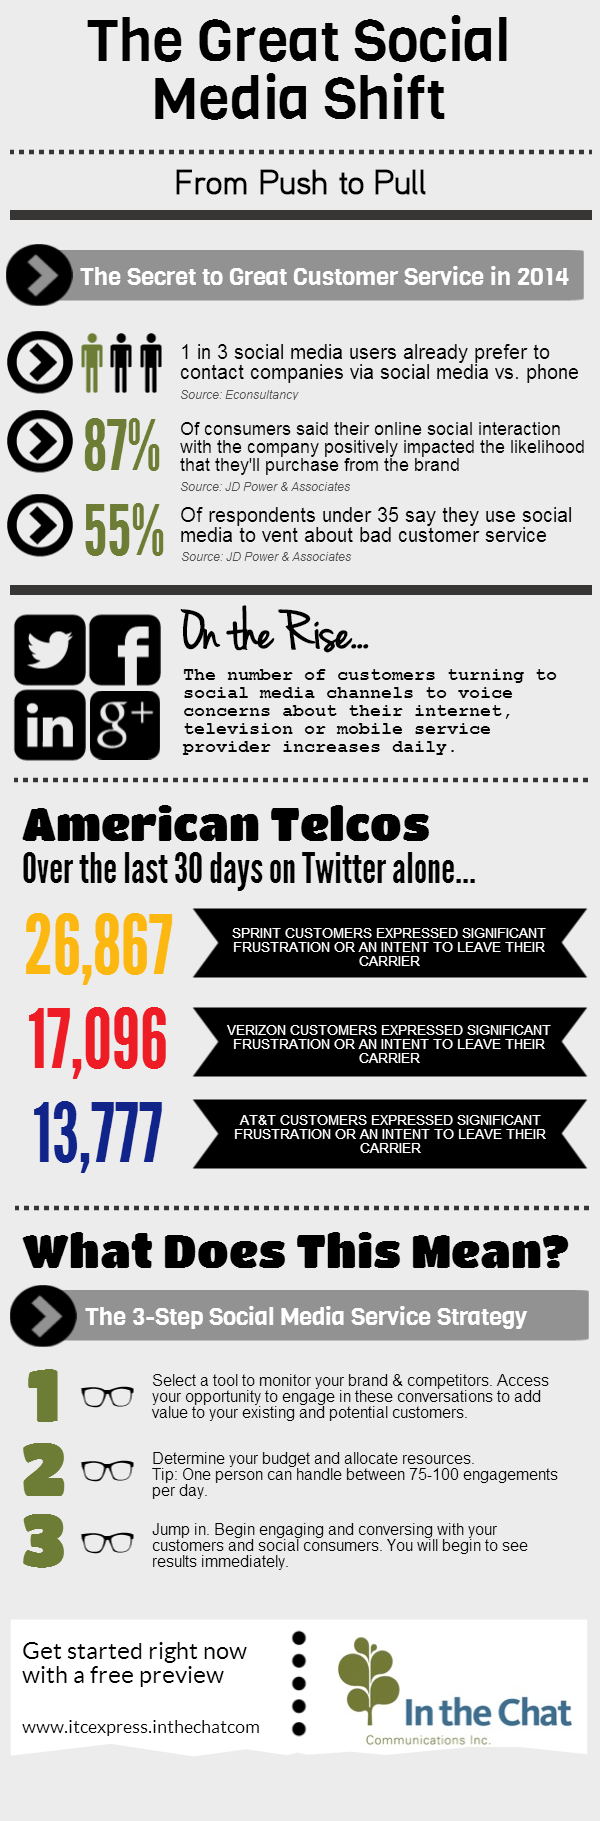 Social Media Strategy for Customer Service's in 2014 [INFOGRAPHIC]